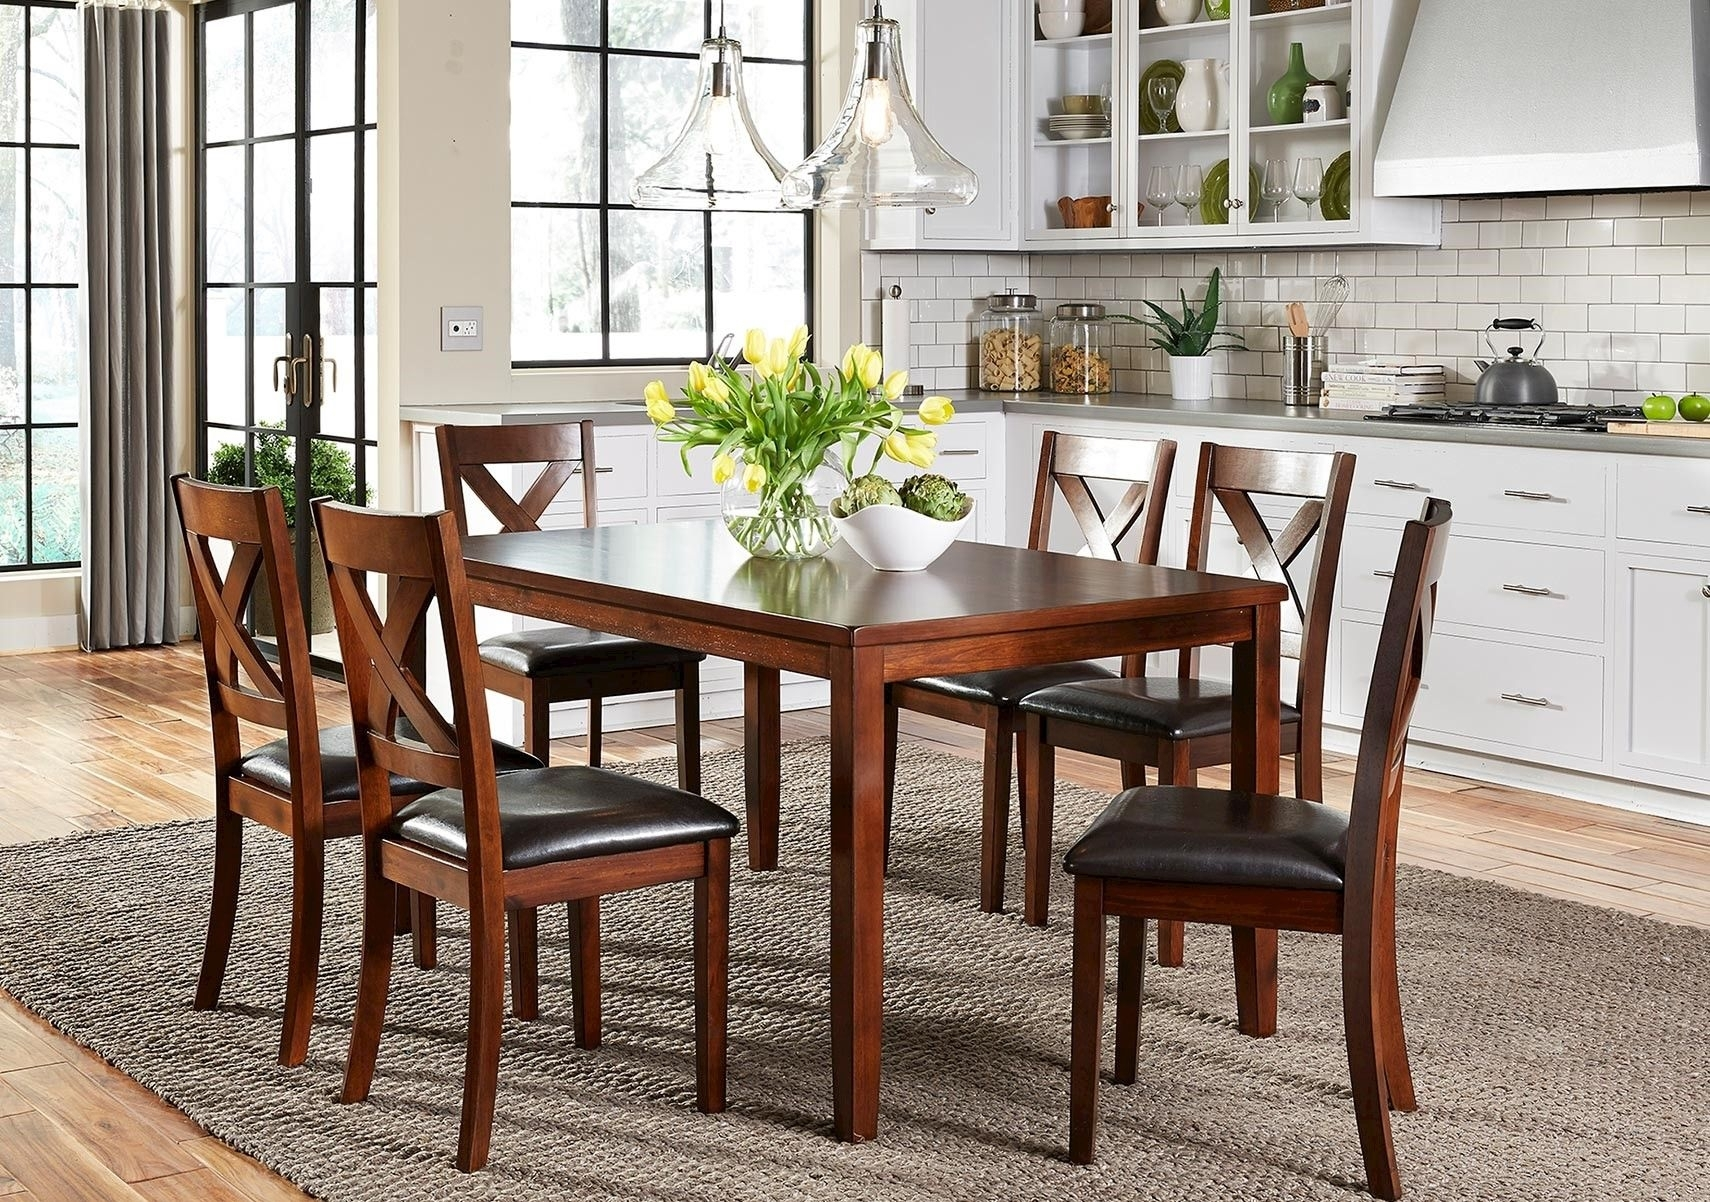 Lacks | Thornton 7 Pc Dining Set | Dining Rooms | Pinterest | Dining Regarding Latest Candice Ii 7 Piece Extension Rectangular Dining Sets With Slat Back Side Chairs (View 10 of 20)